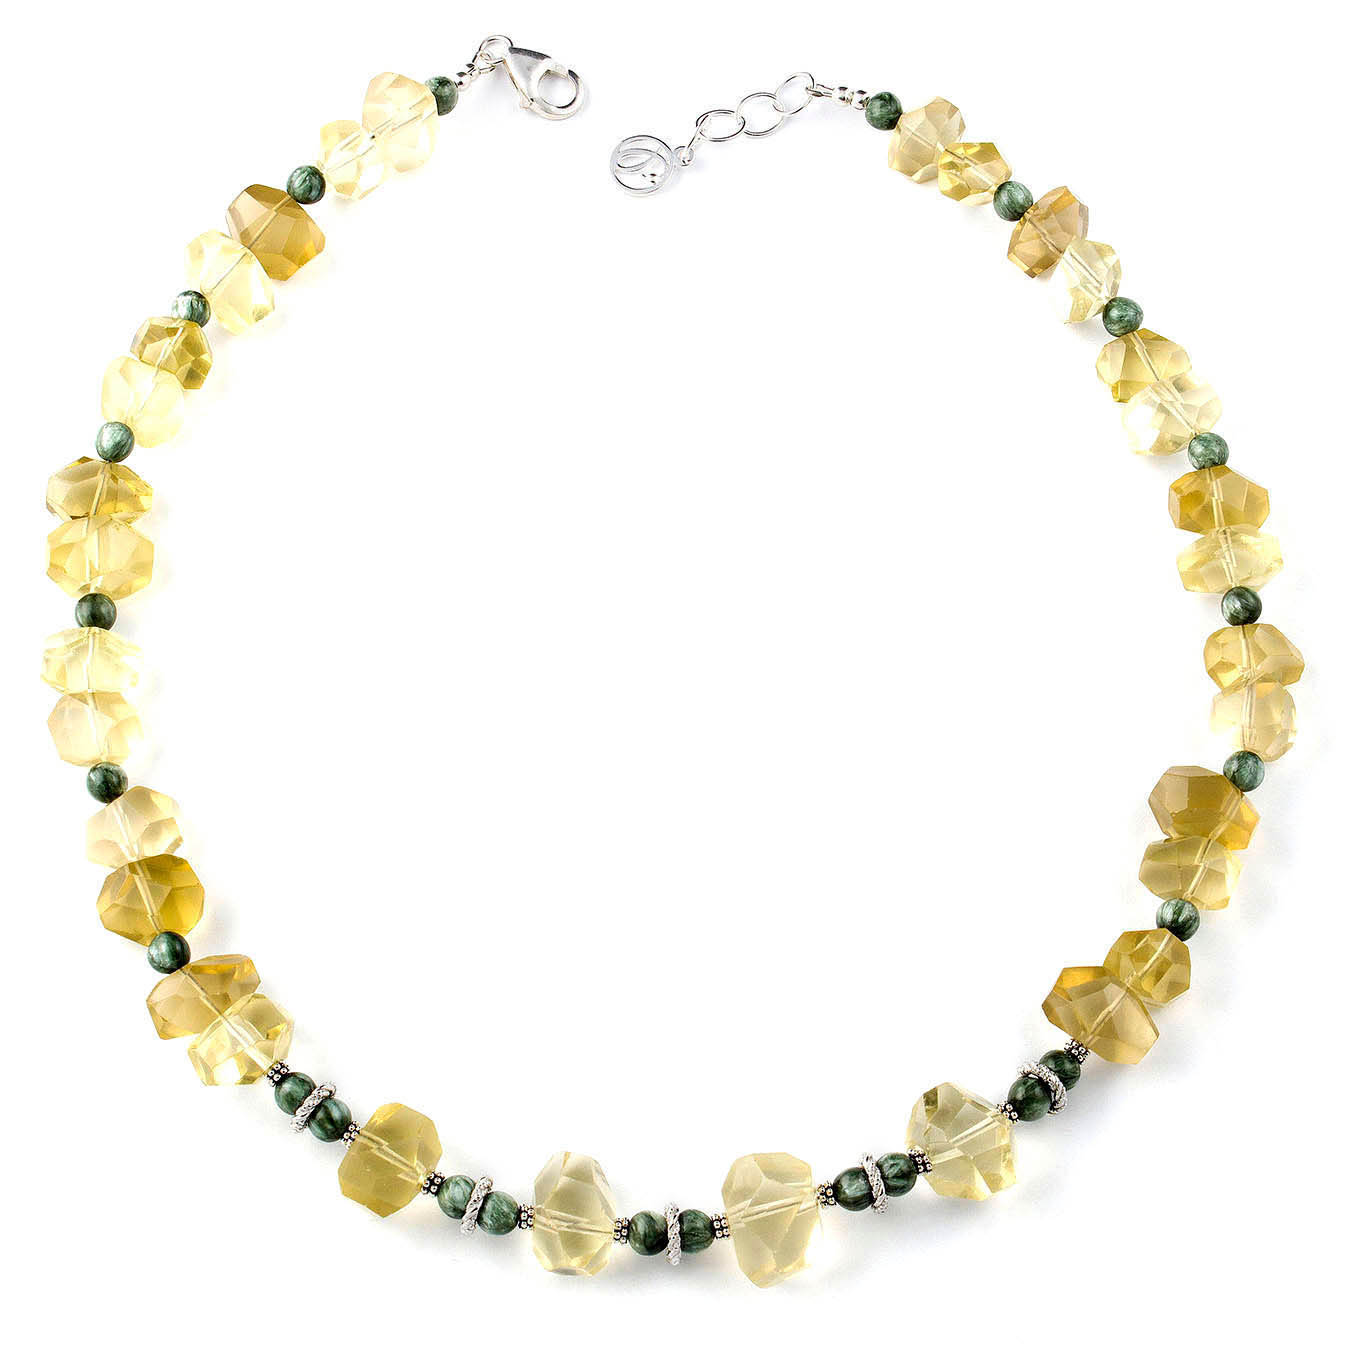 Statement beaded jewelry necklace made of lemon quartz and seraphinite